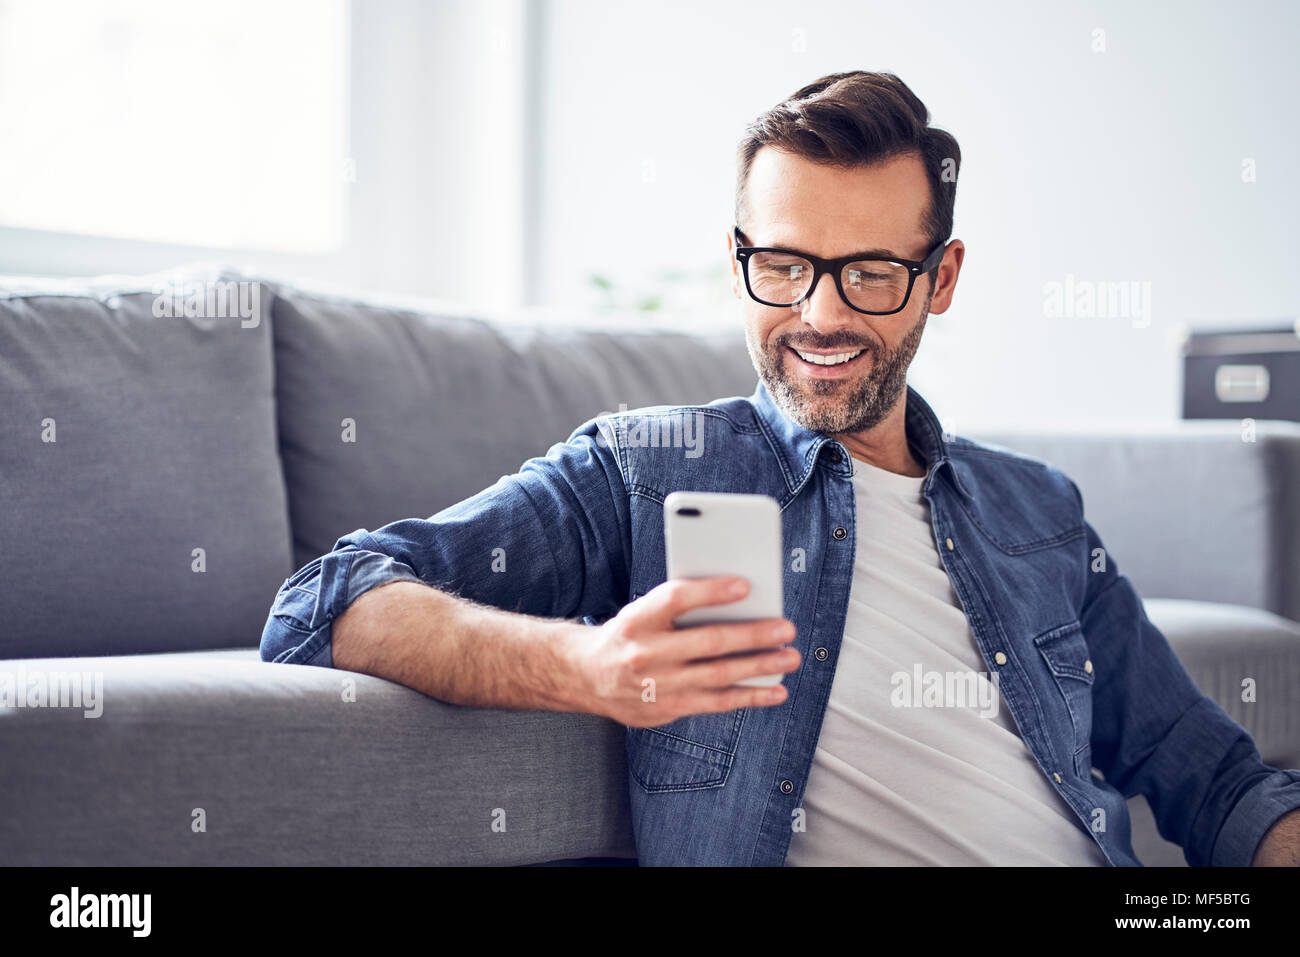 Smiling man in living room looking at cell phone - Stock Image